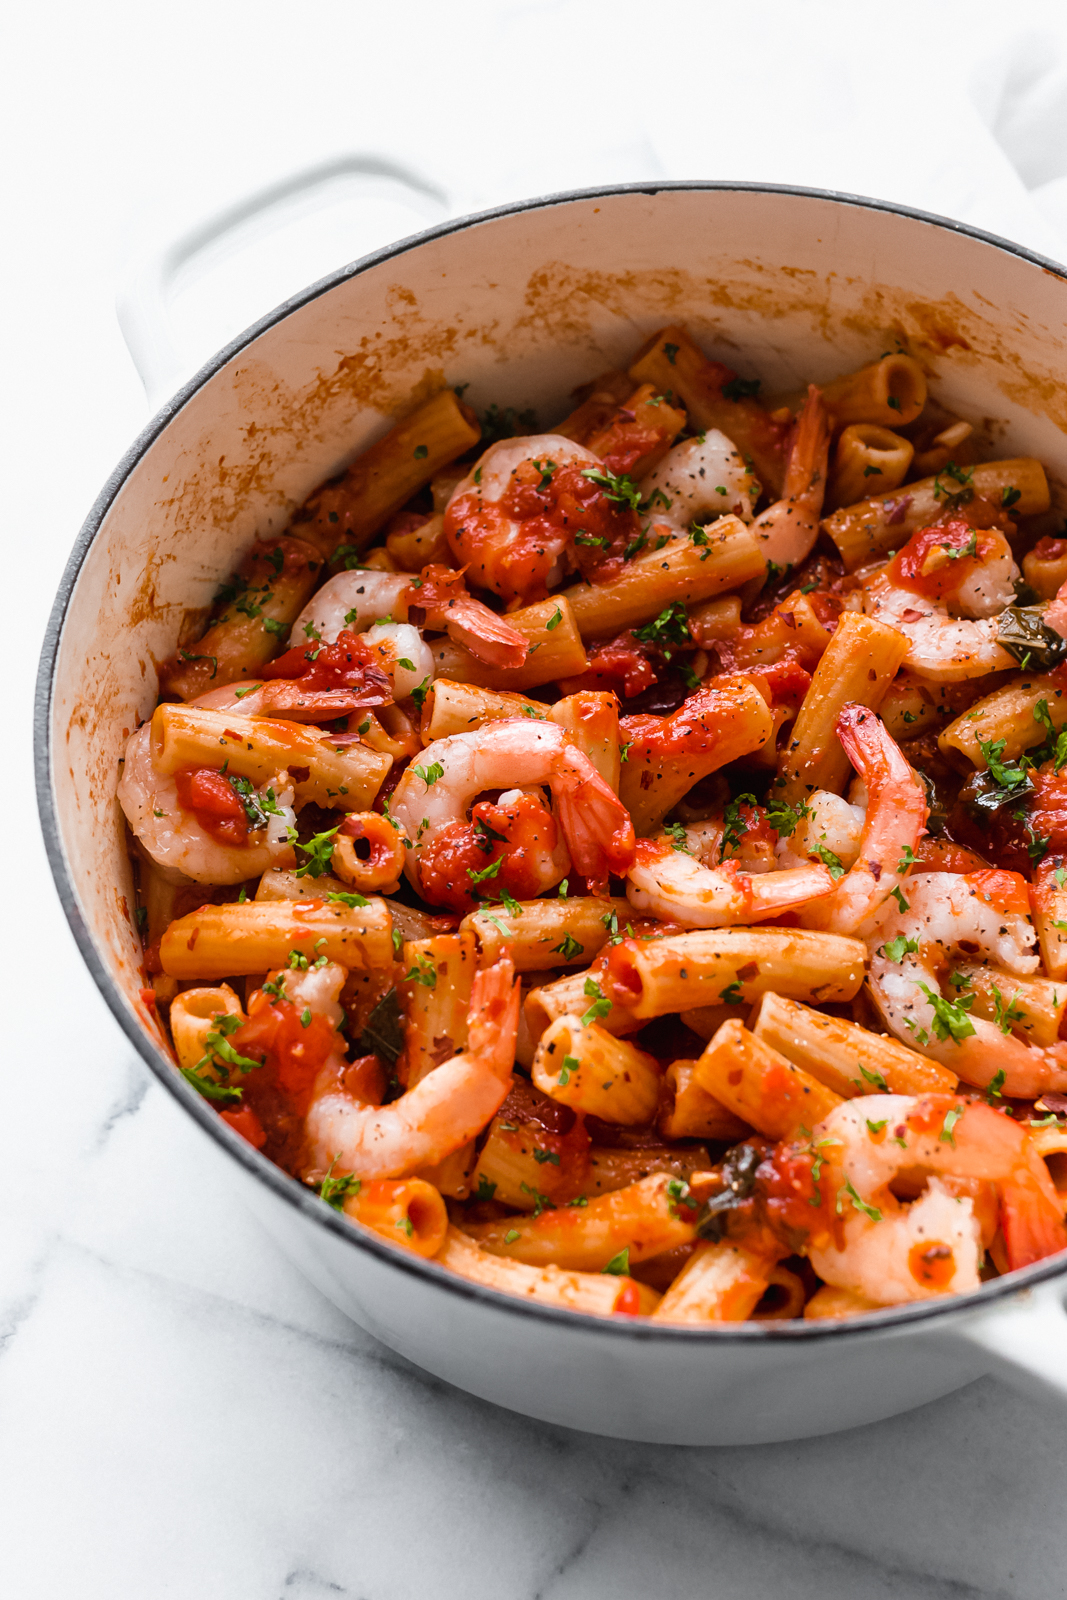 pasta with shrimp tossed with spicy tomato sauce and topped with parsley in cast iron pot